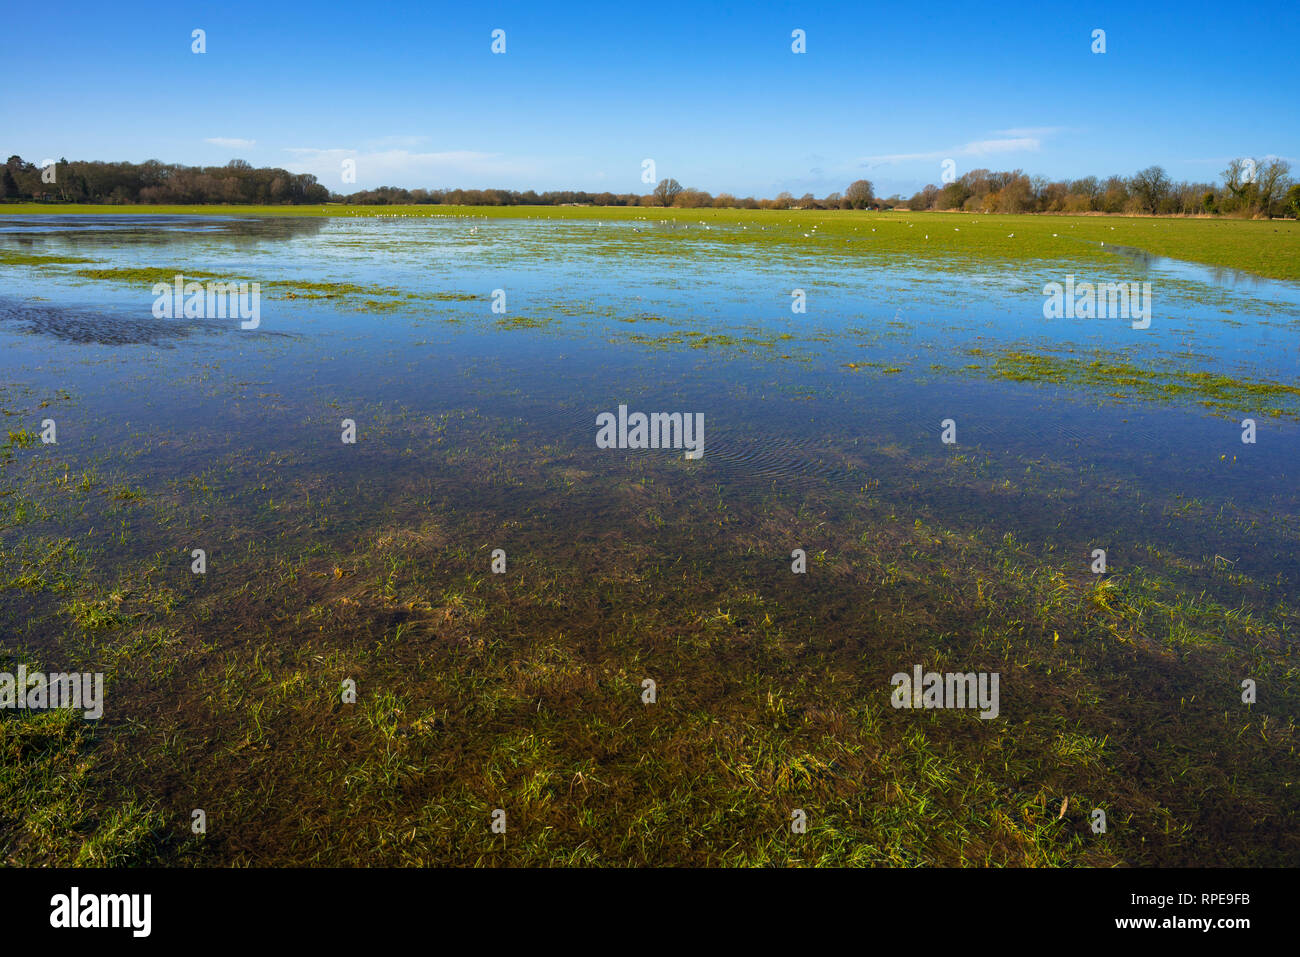 Flooded meadow linking Houghton and Hemingford Abbots villages, Cambridgeshire, England, UK. - Stock Image